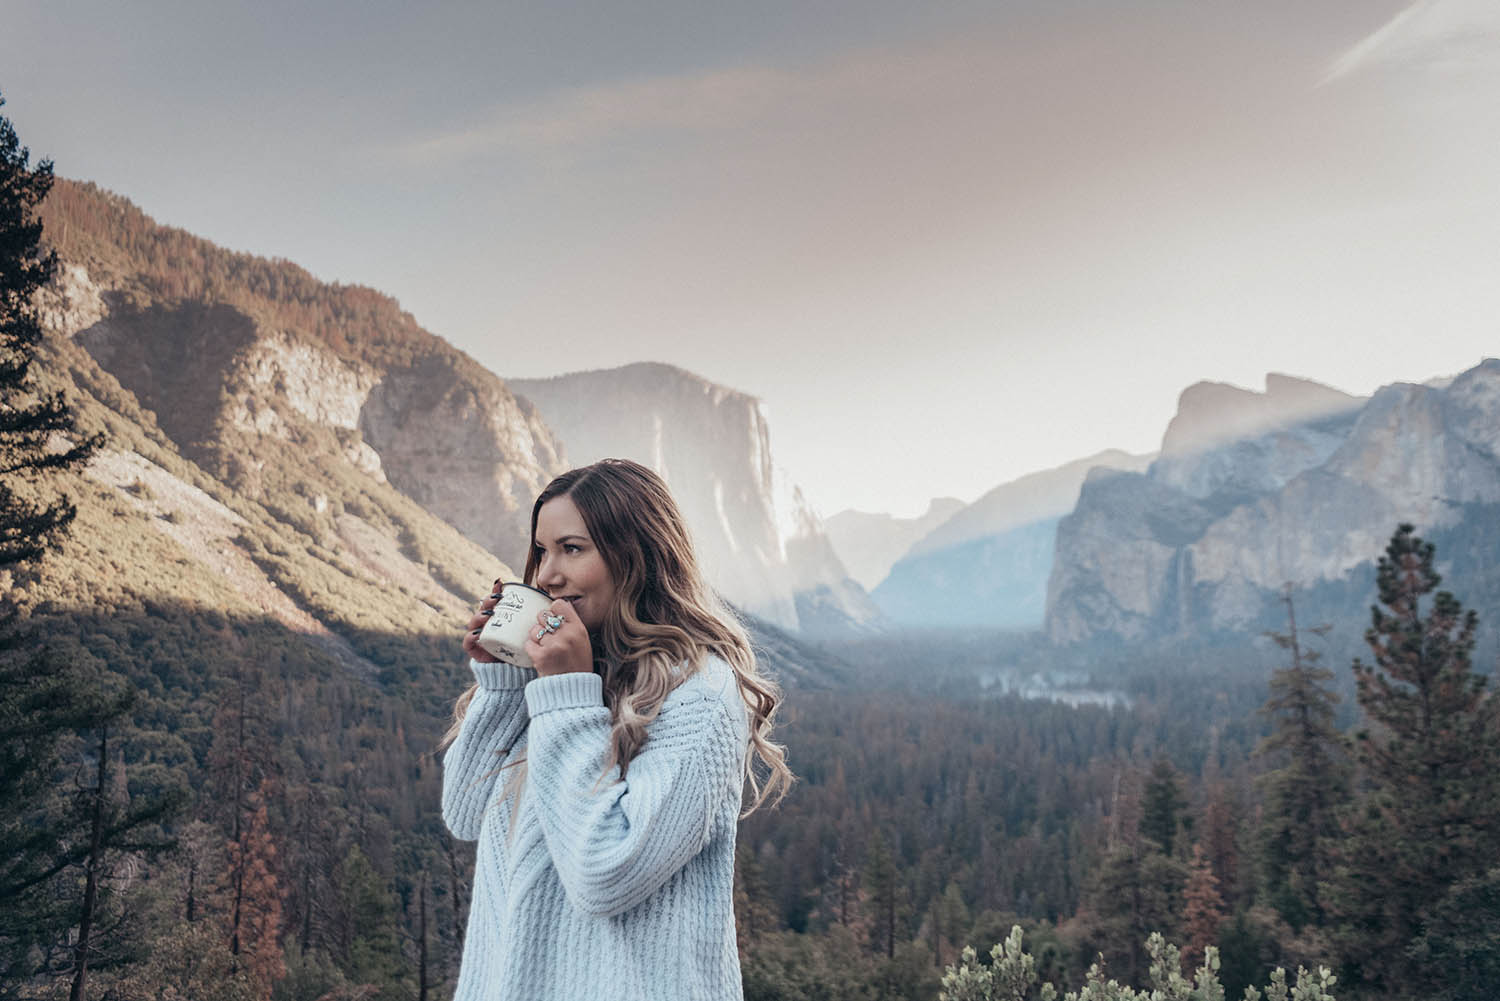 Adaras Cozy Blue Knitted Sweater Outfit in Yosemite National Park, California